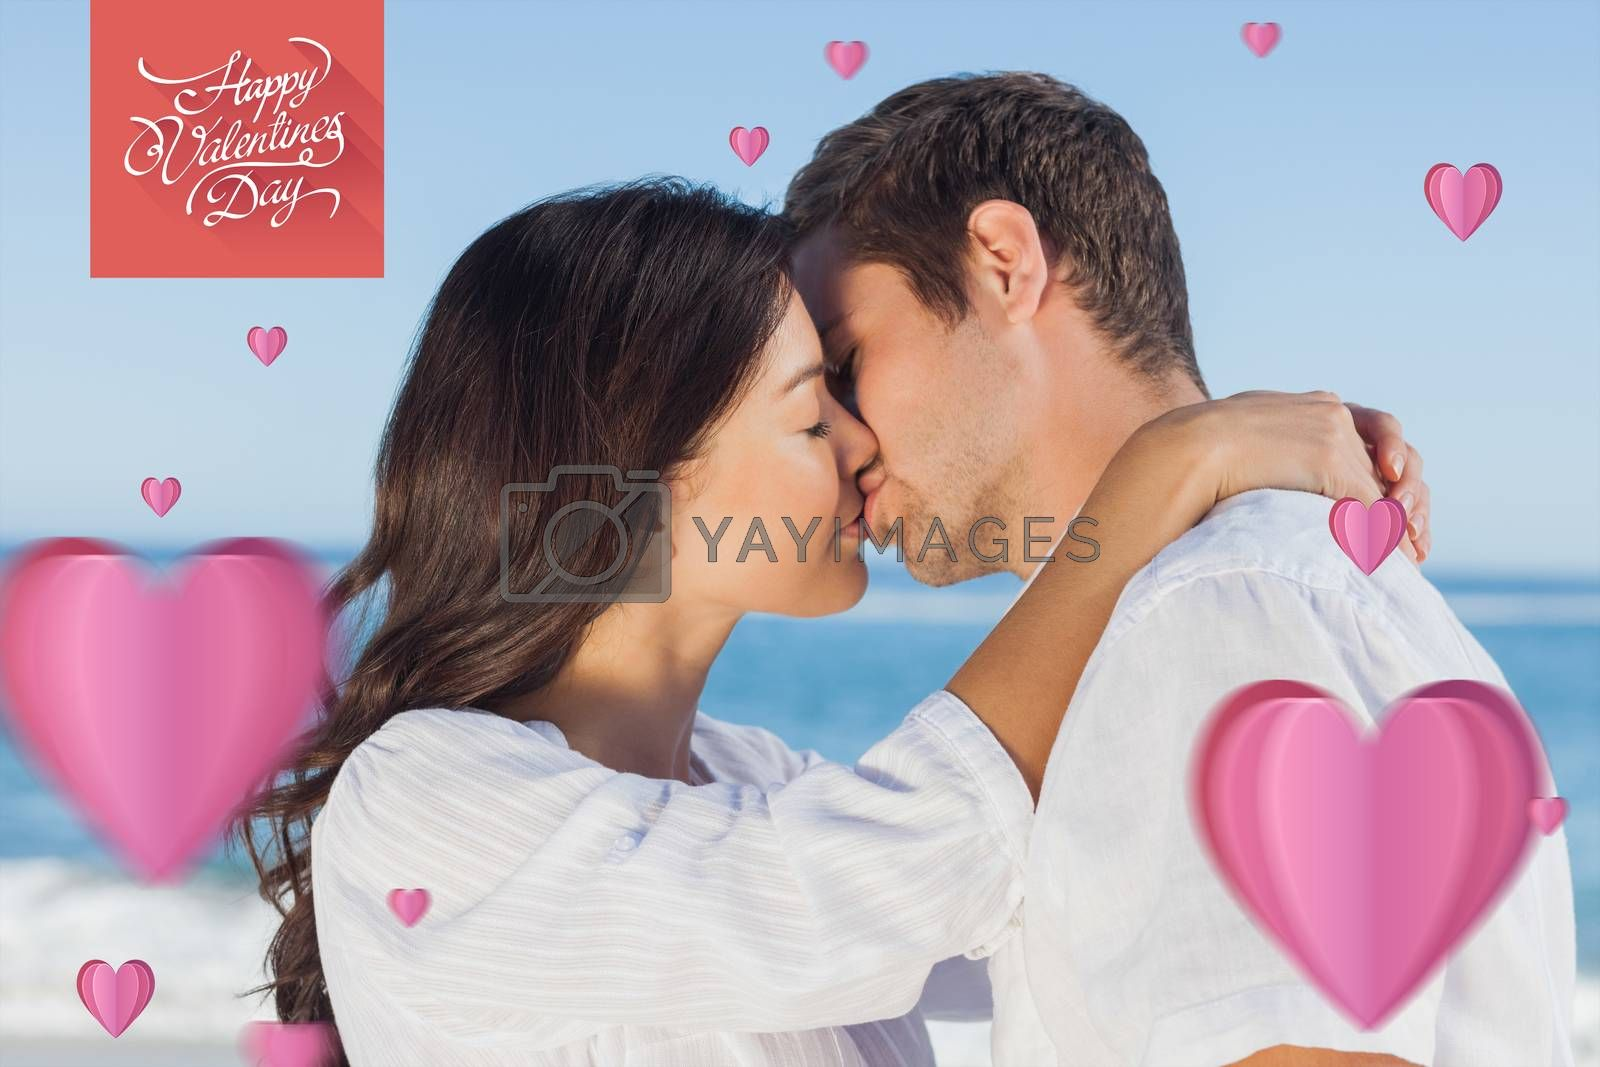 Couple embracing and kissing each other on the beach against happy valentines day